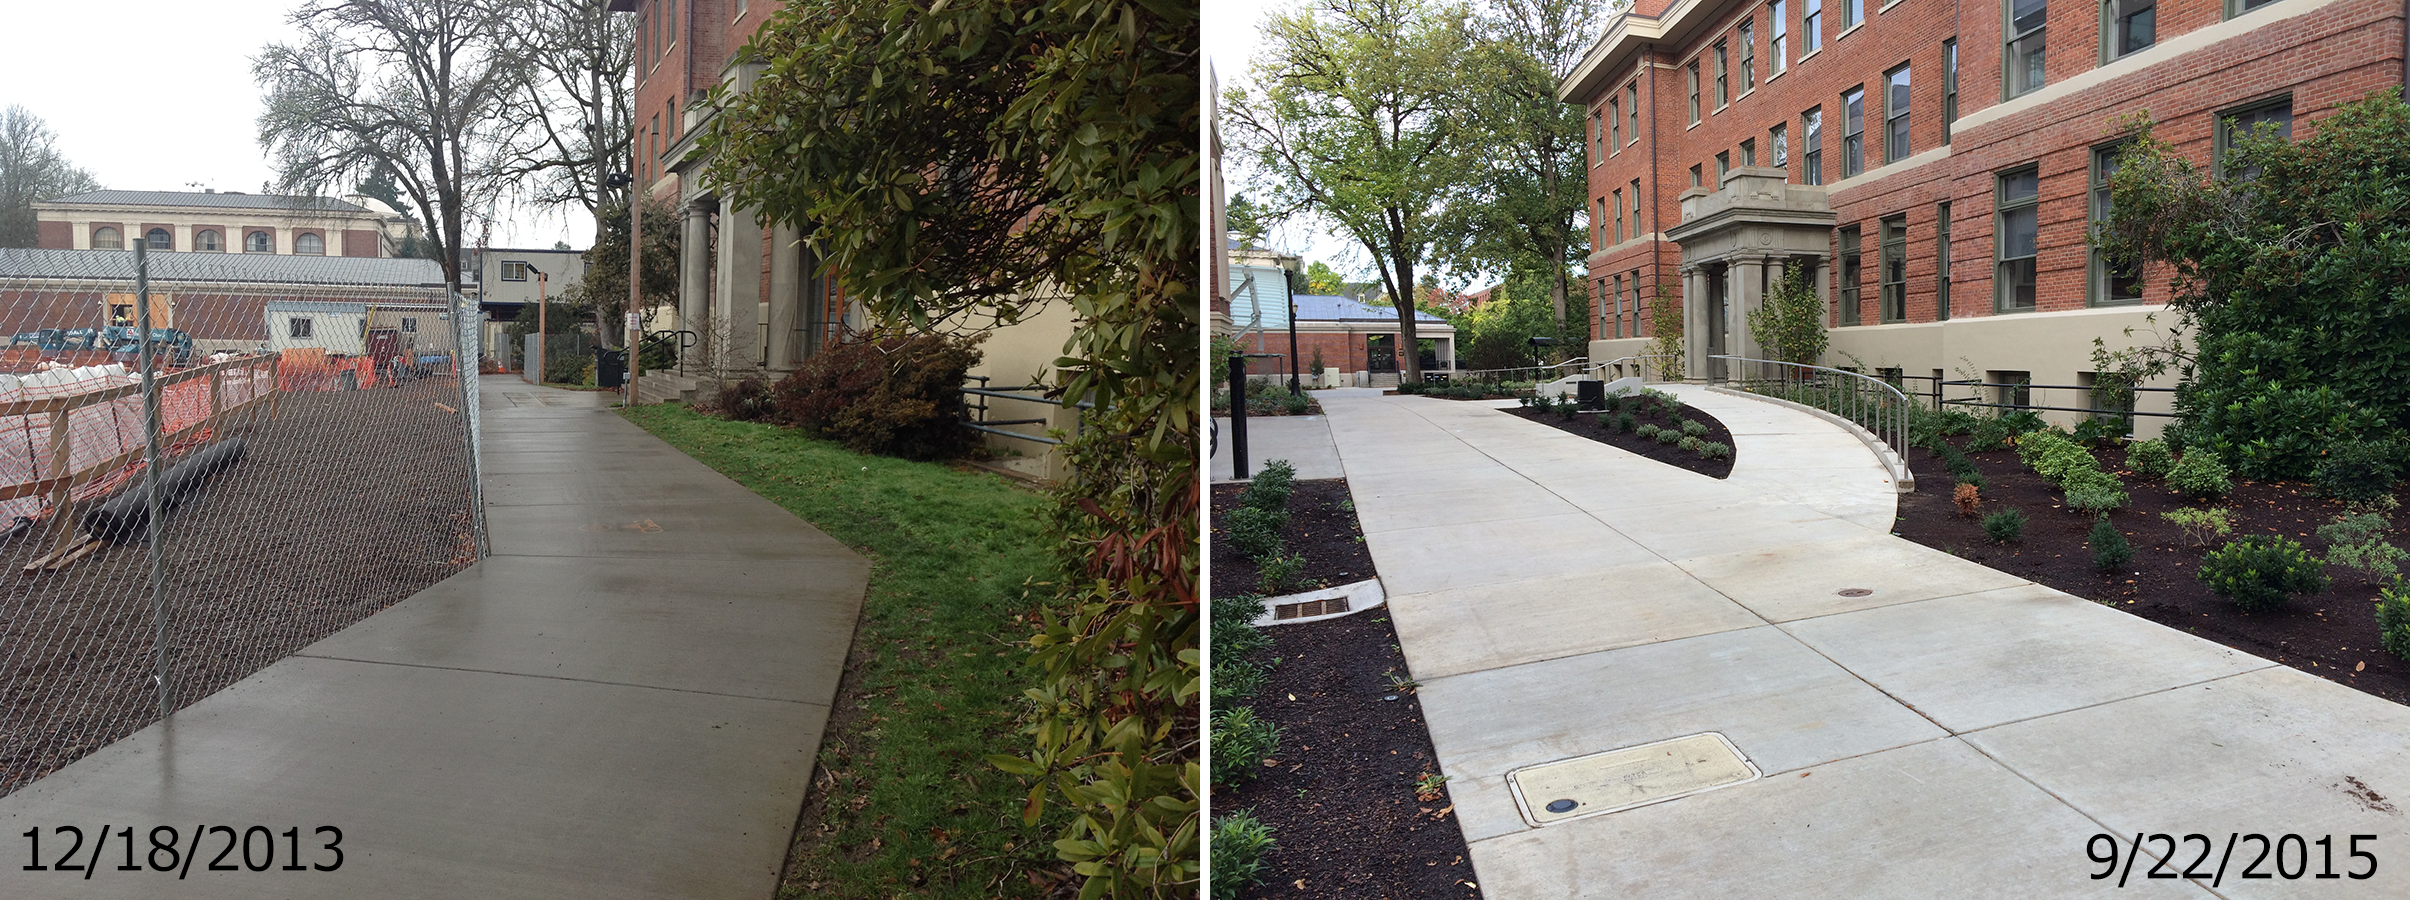 Strand south entrance showing new accessible paths with stairs relocated